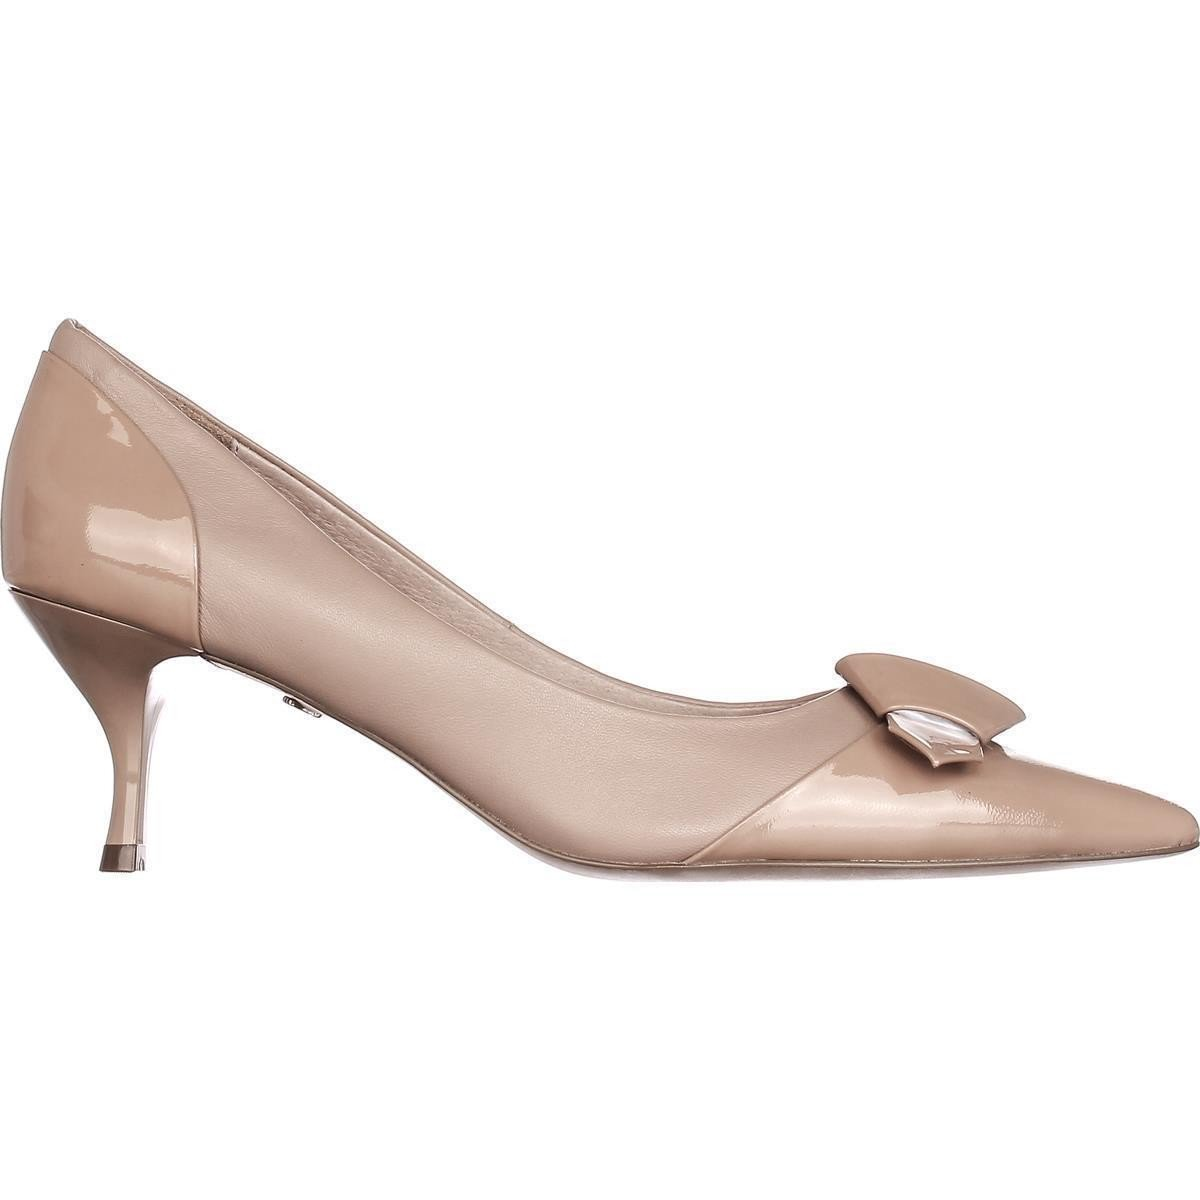 Kitten Heel Nude Pumps 5nEIzD0Z